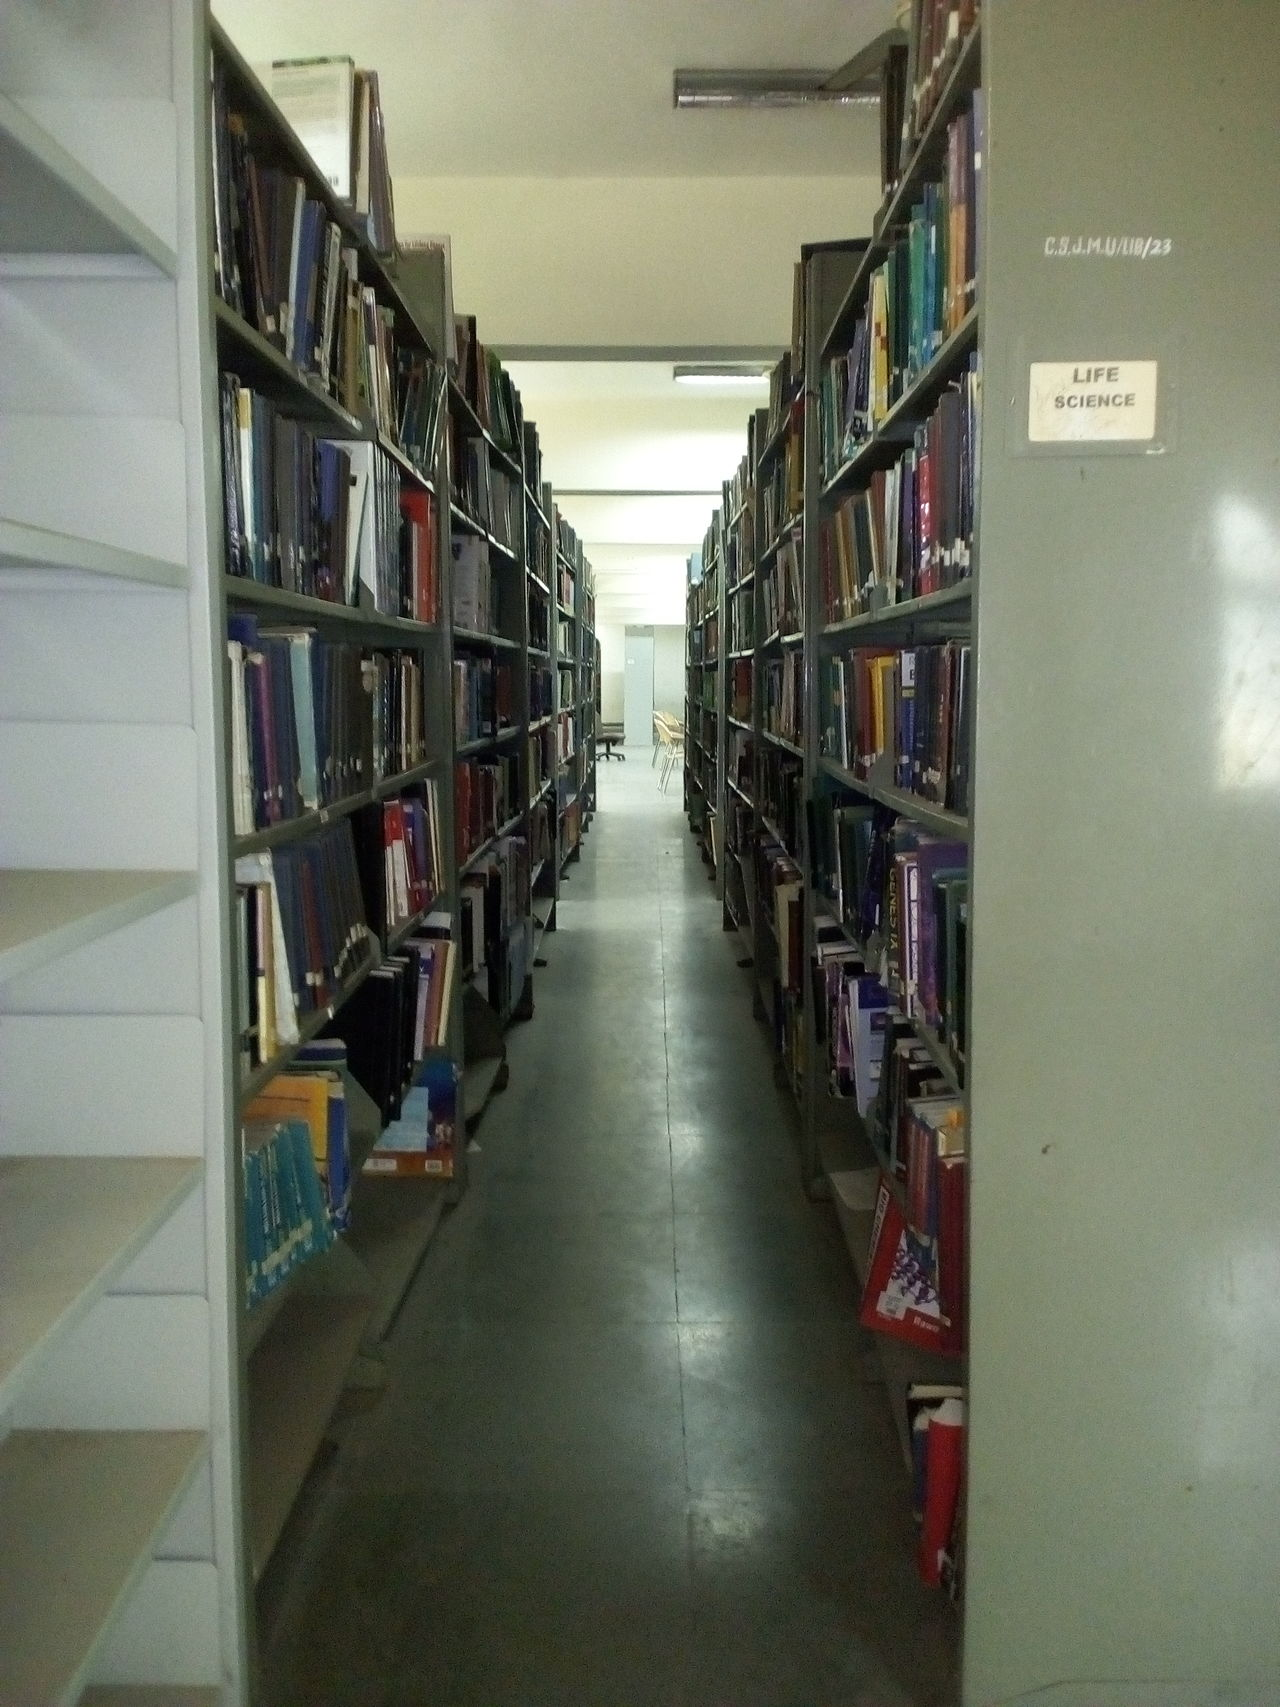 Shelf Indoors  Bookshelf Large Group Of Objects Stack Abundance Library No People Day Architecture